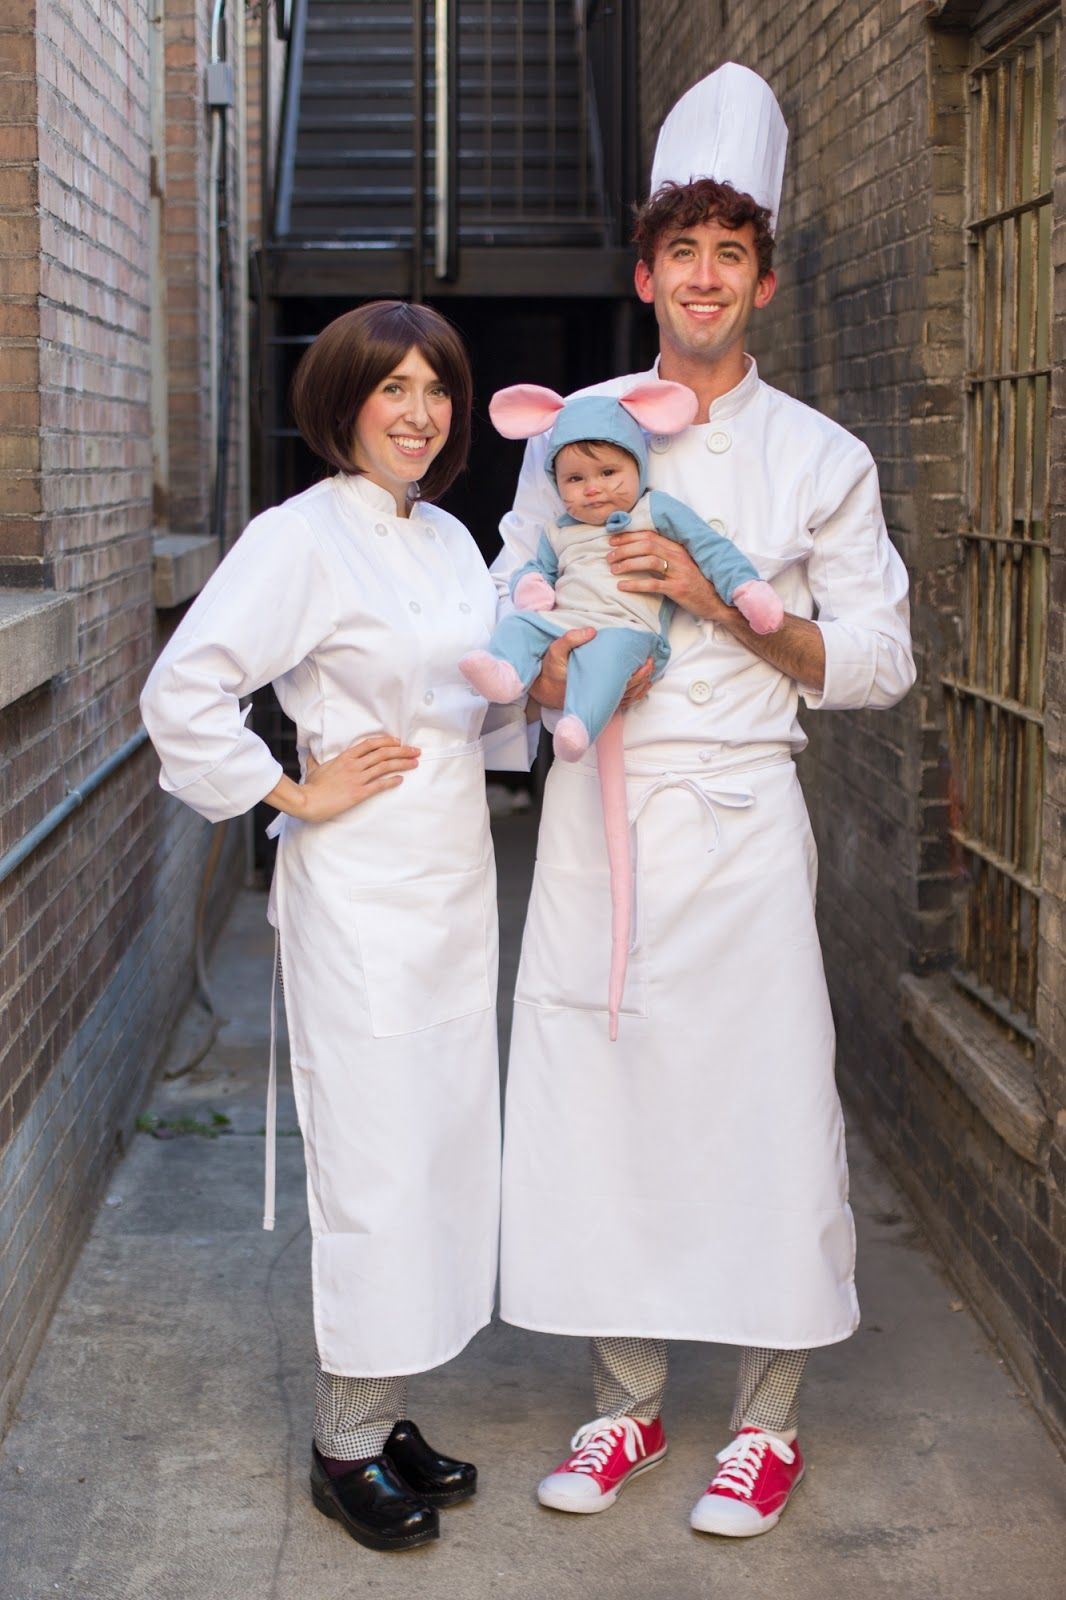 Halloween Costume Ratatouille Cute Family Remy Linguini Colette 7 Jpg 1066 1 Disney Family Costumes Family Halloween Costumes Family Themed Halloween Costumes